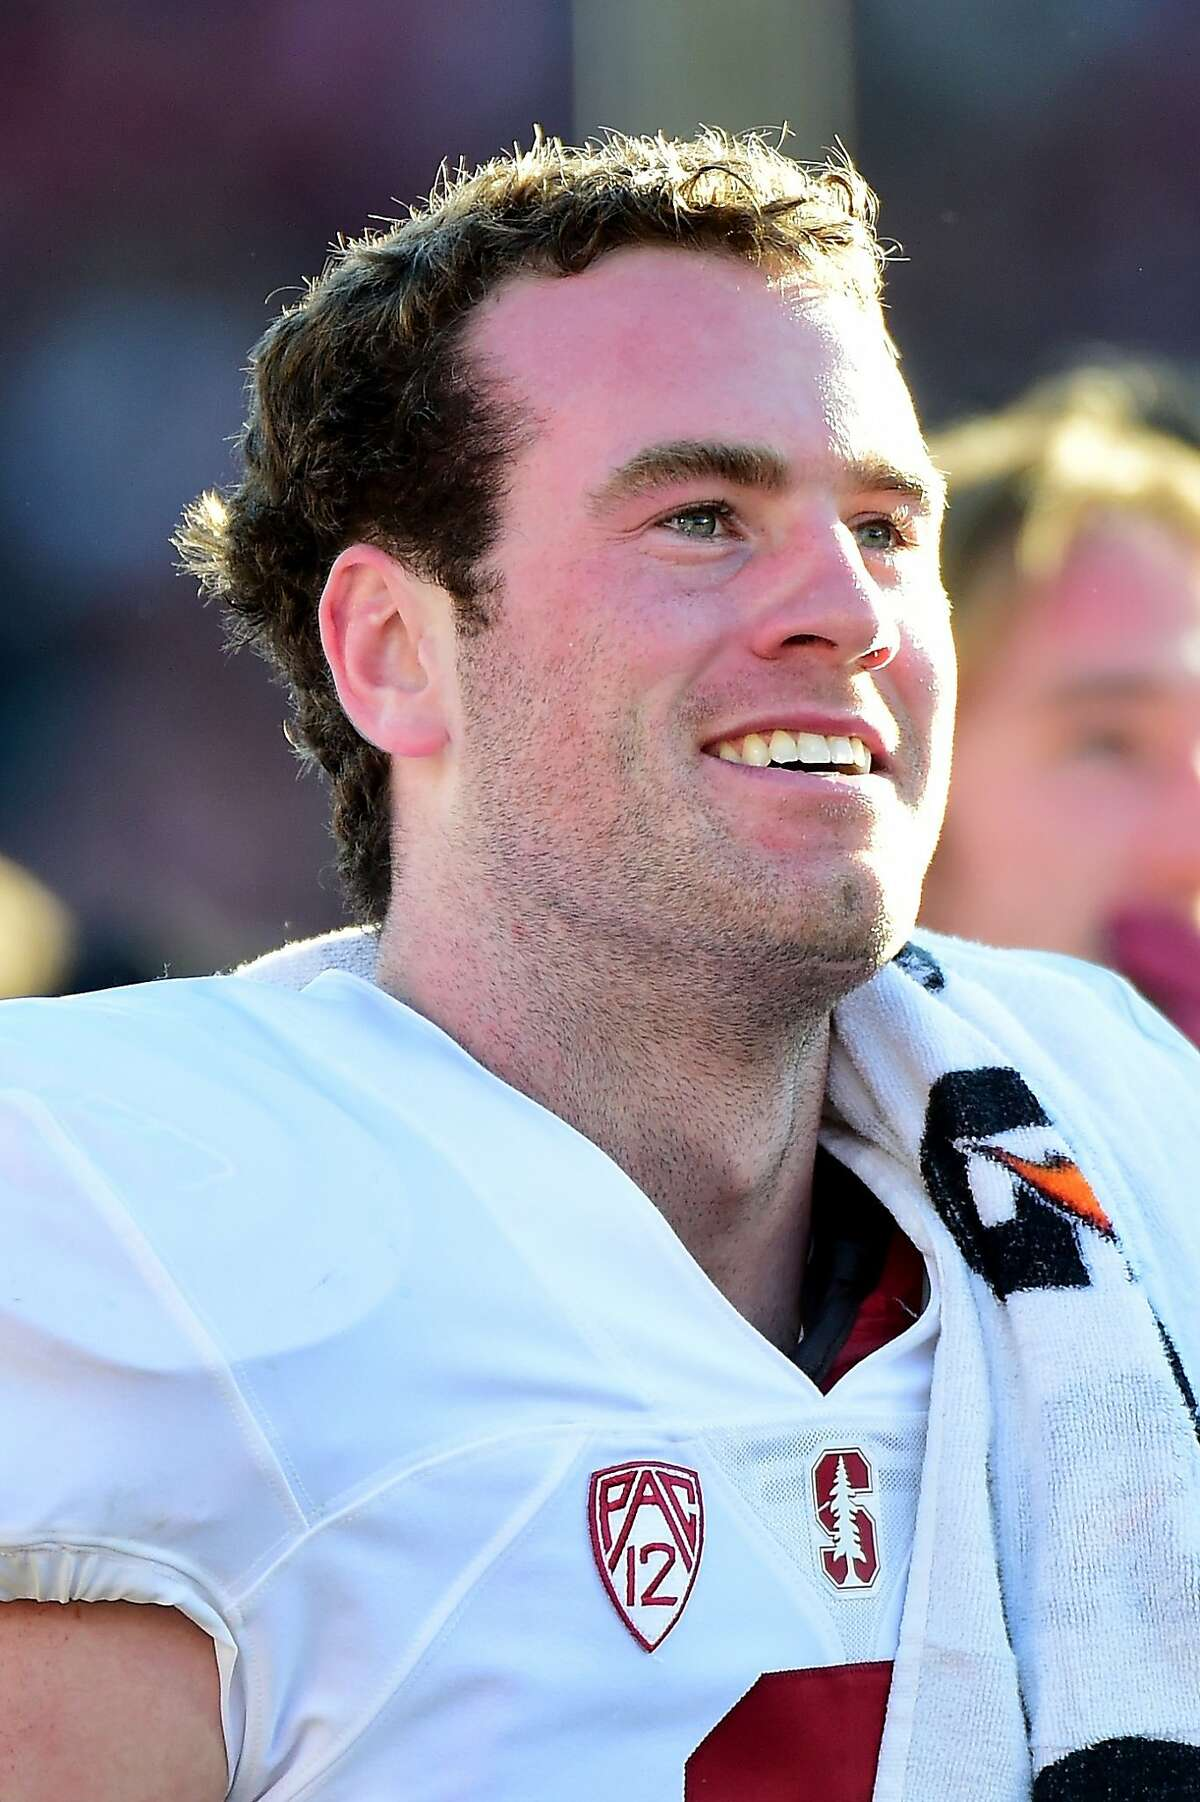 Kevin Hogan was all smiles after the Rose Bowl.